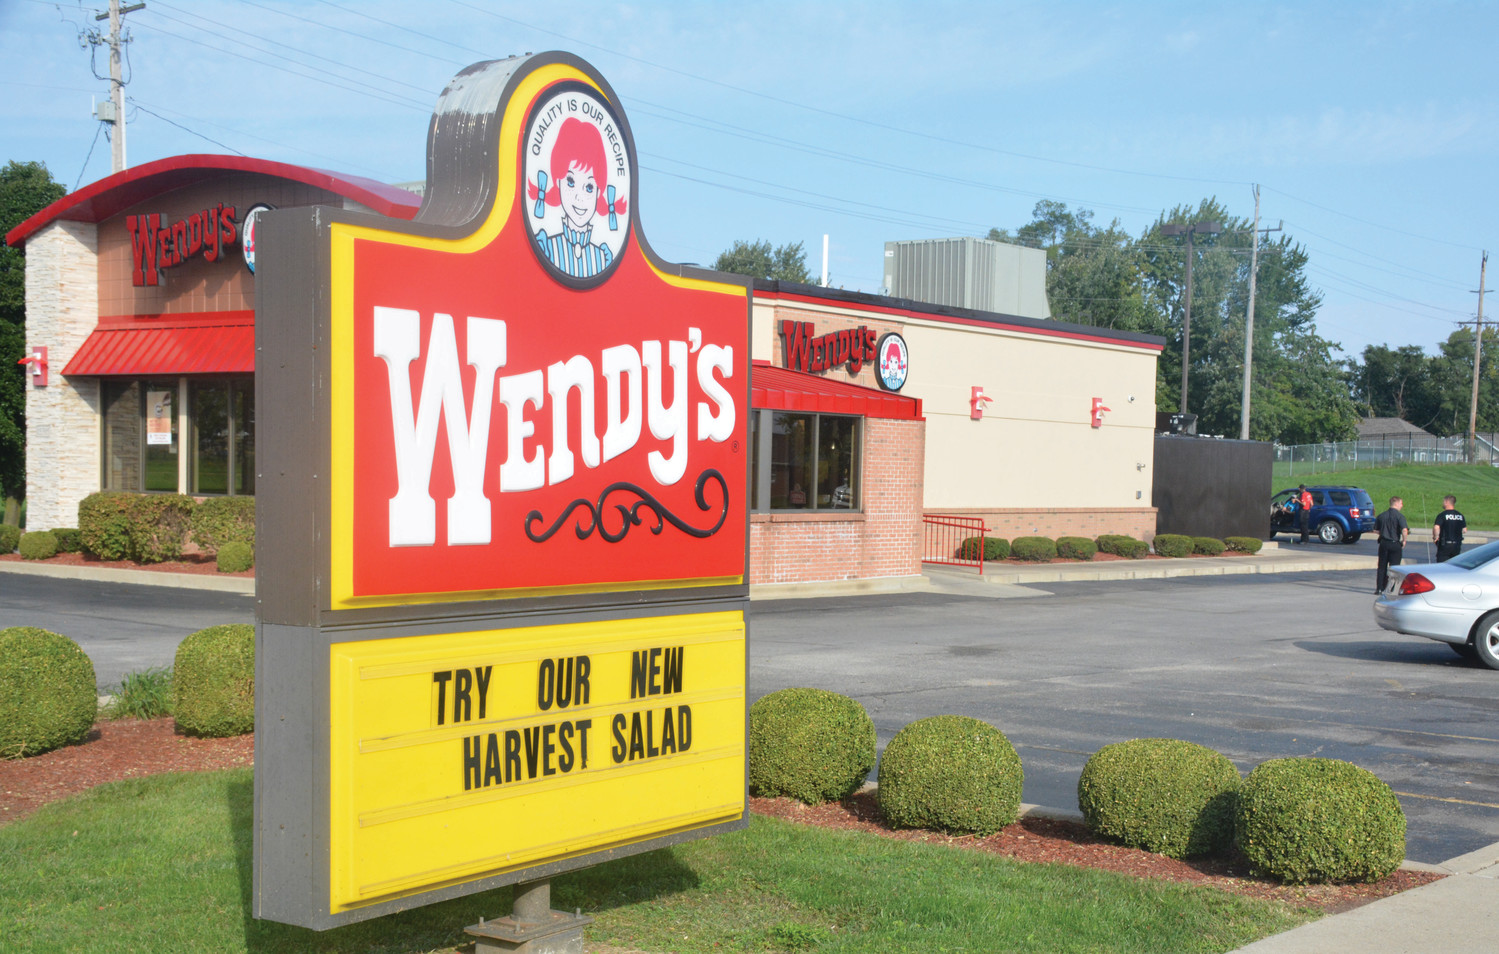 The Paris Wendy's Restaurant was robbed late Monday, Oct. 1, by two men brandishing handguns. Local police say they have several leads, and the Illinois State Police Crime Scene Investigation Unit is assisting.